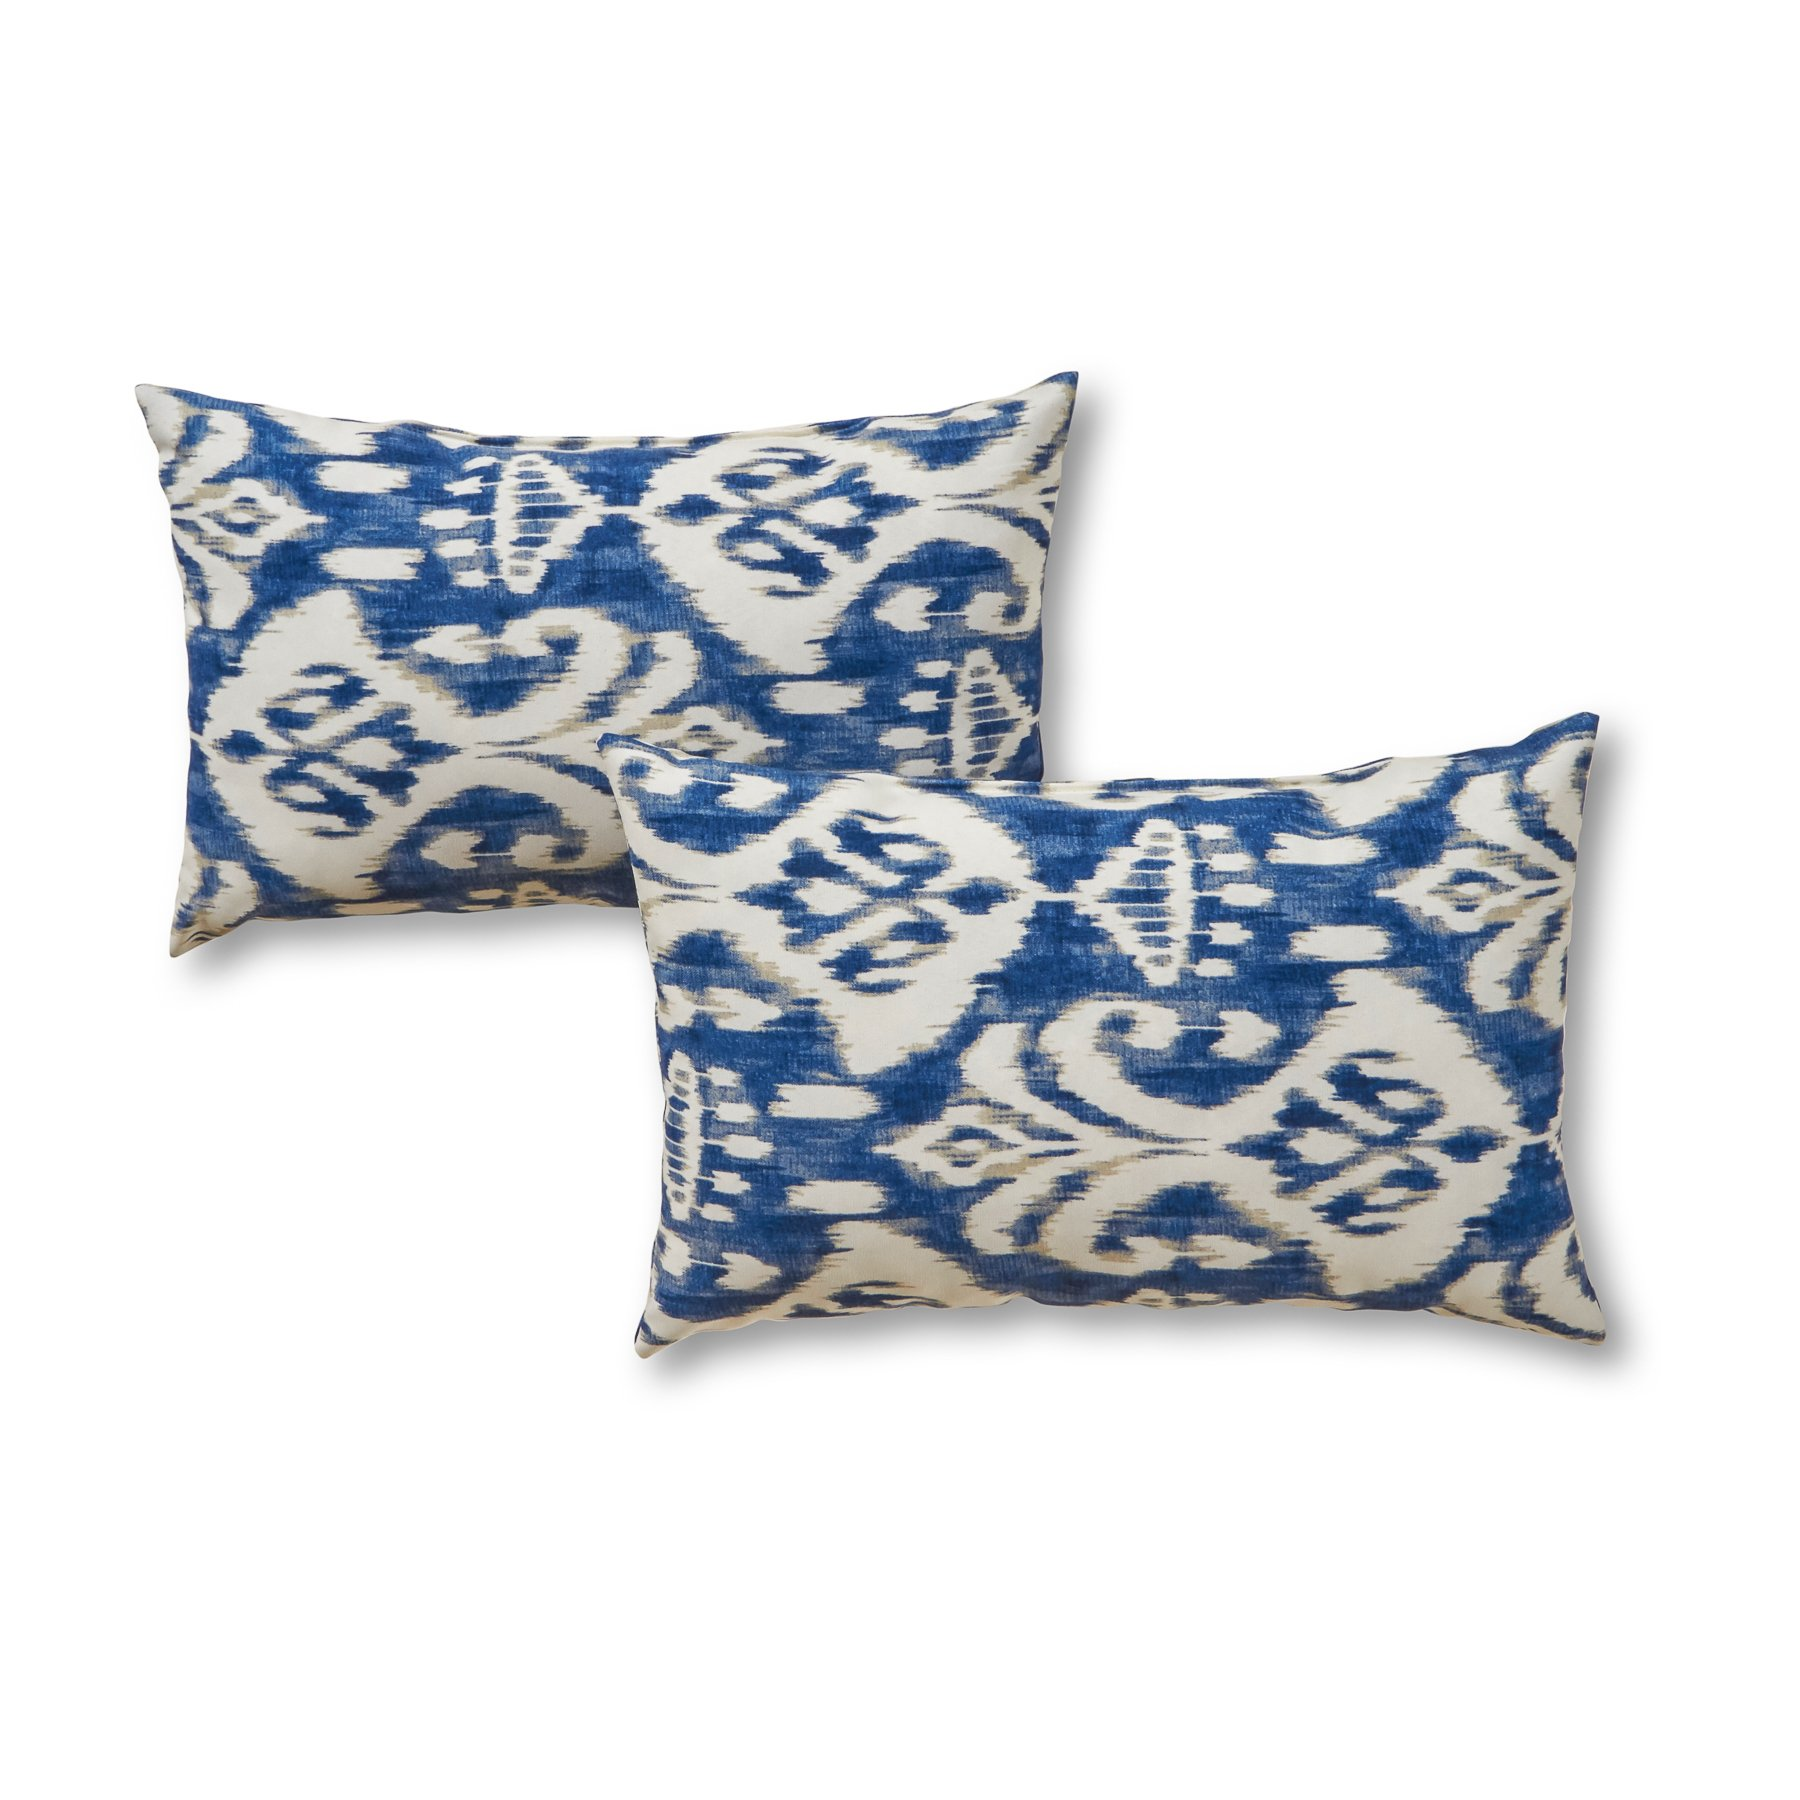 Greendale Home Fashions Rectangle Outdoor Accent Pillows in Coastal Ikat (Set of 2), Azule